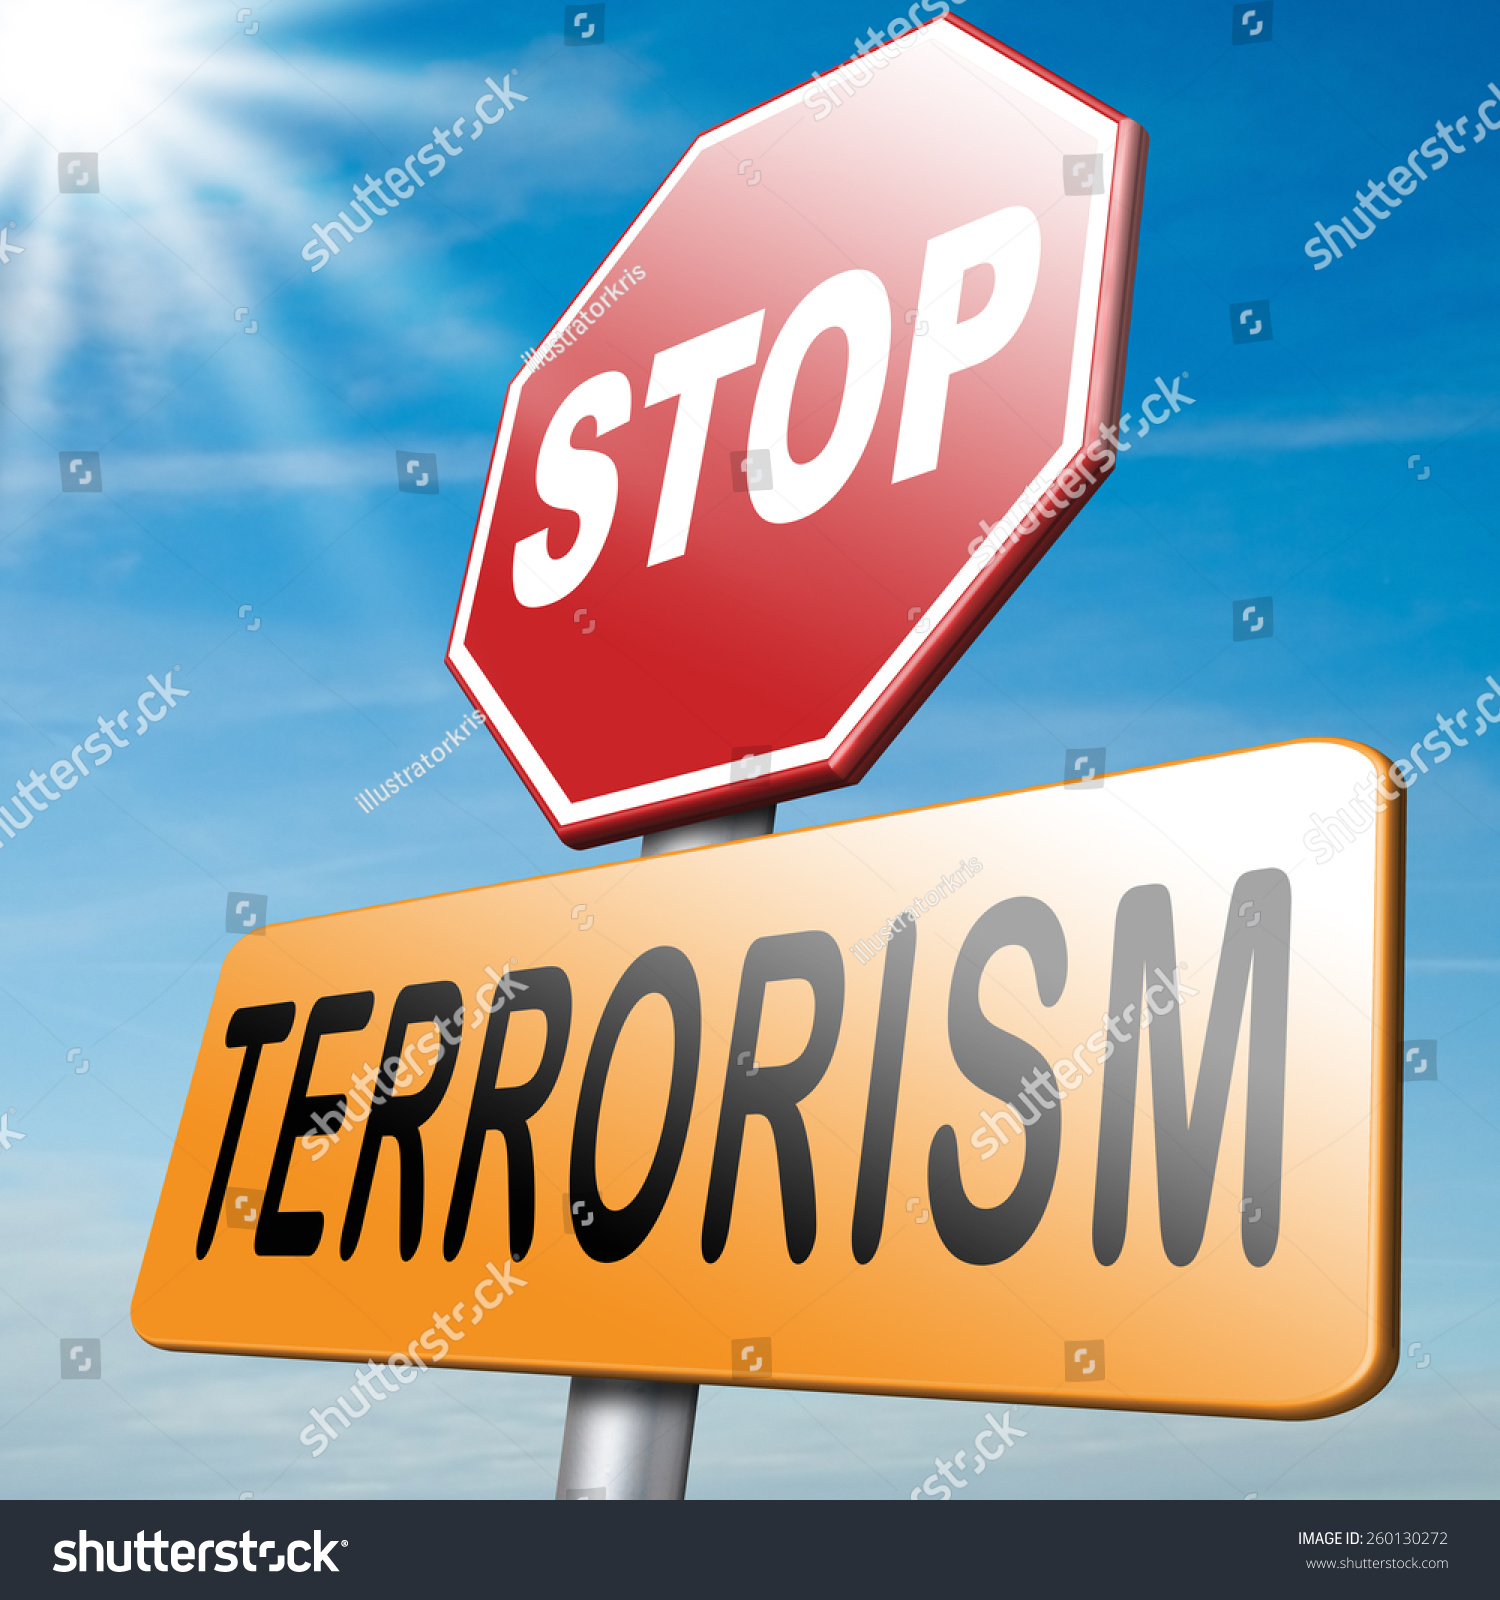 Image result for Terror and Terrorism